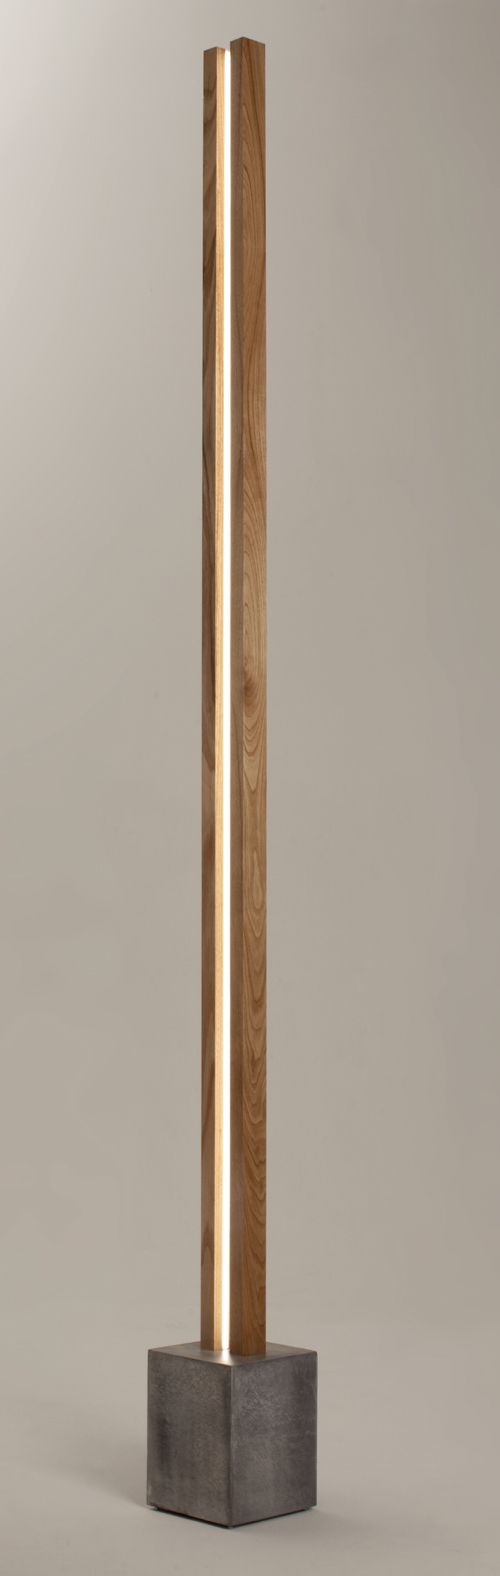 Stunning The Lubois a floor lamp with a clear LED light strip inside a vertical structure